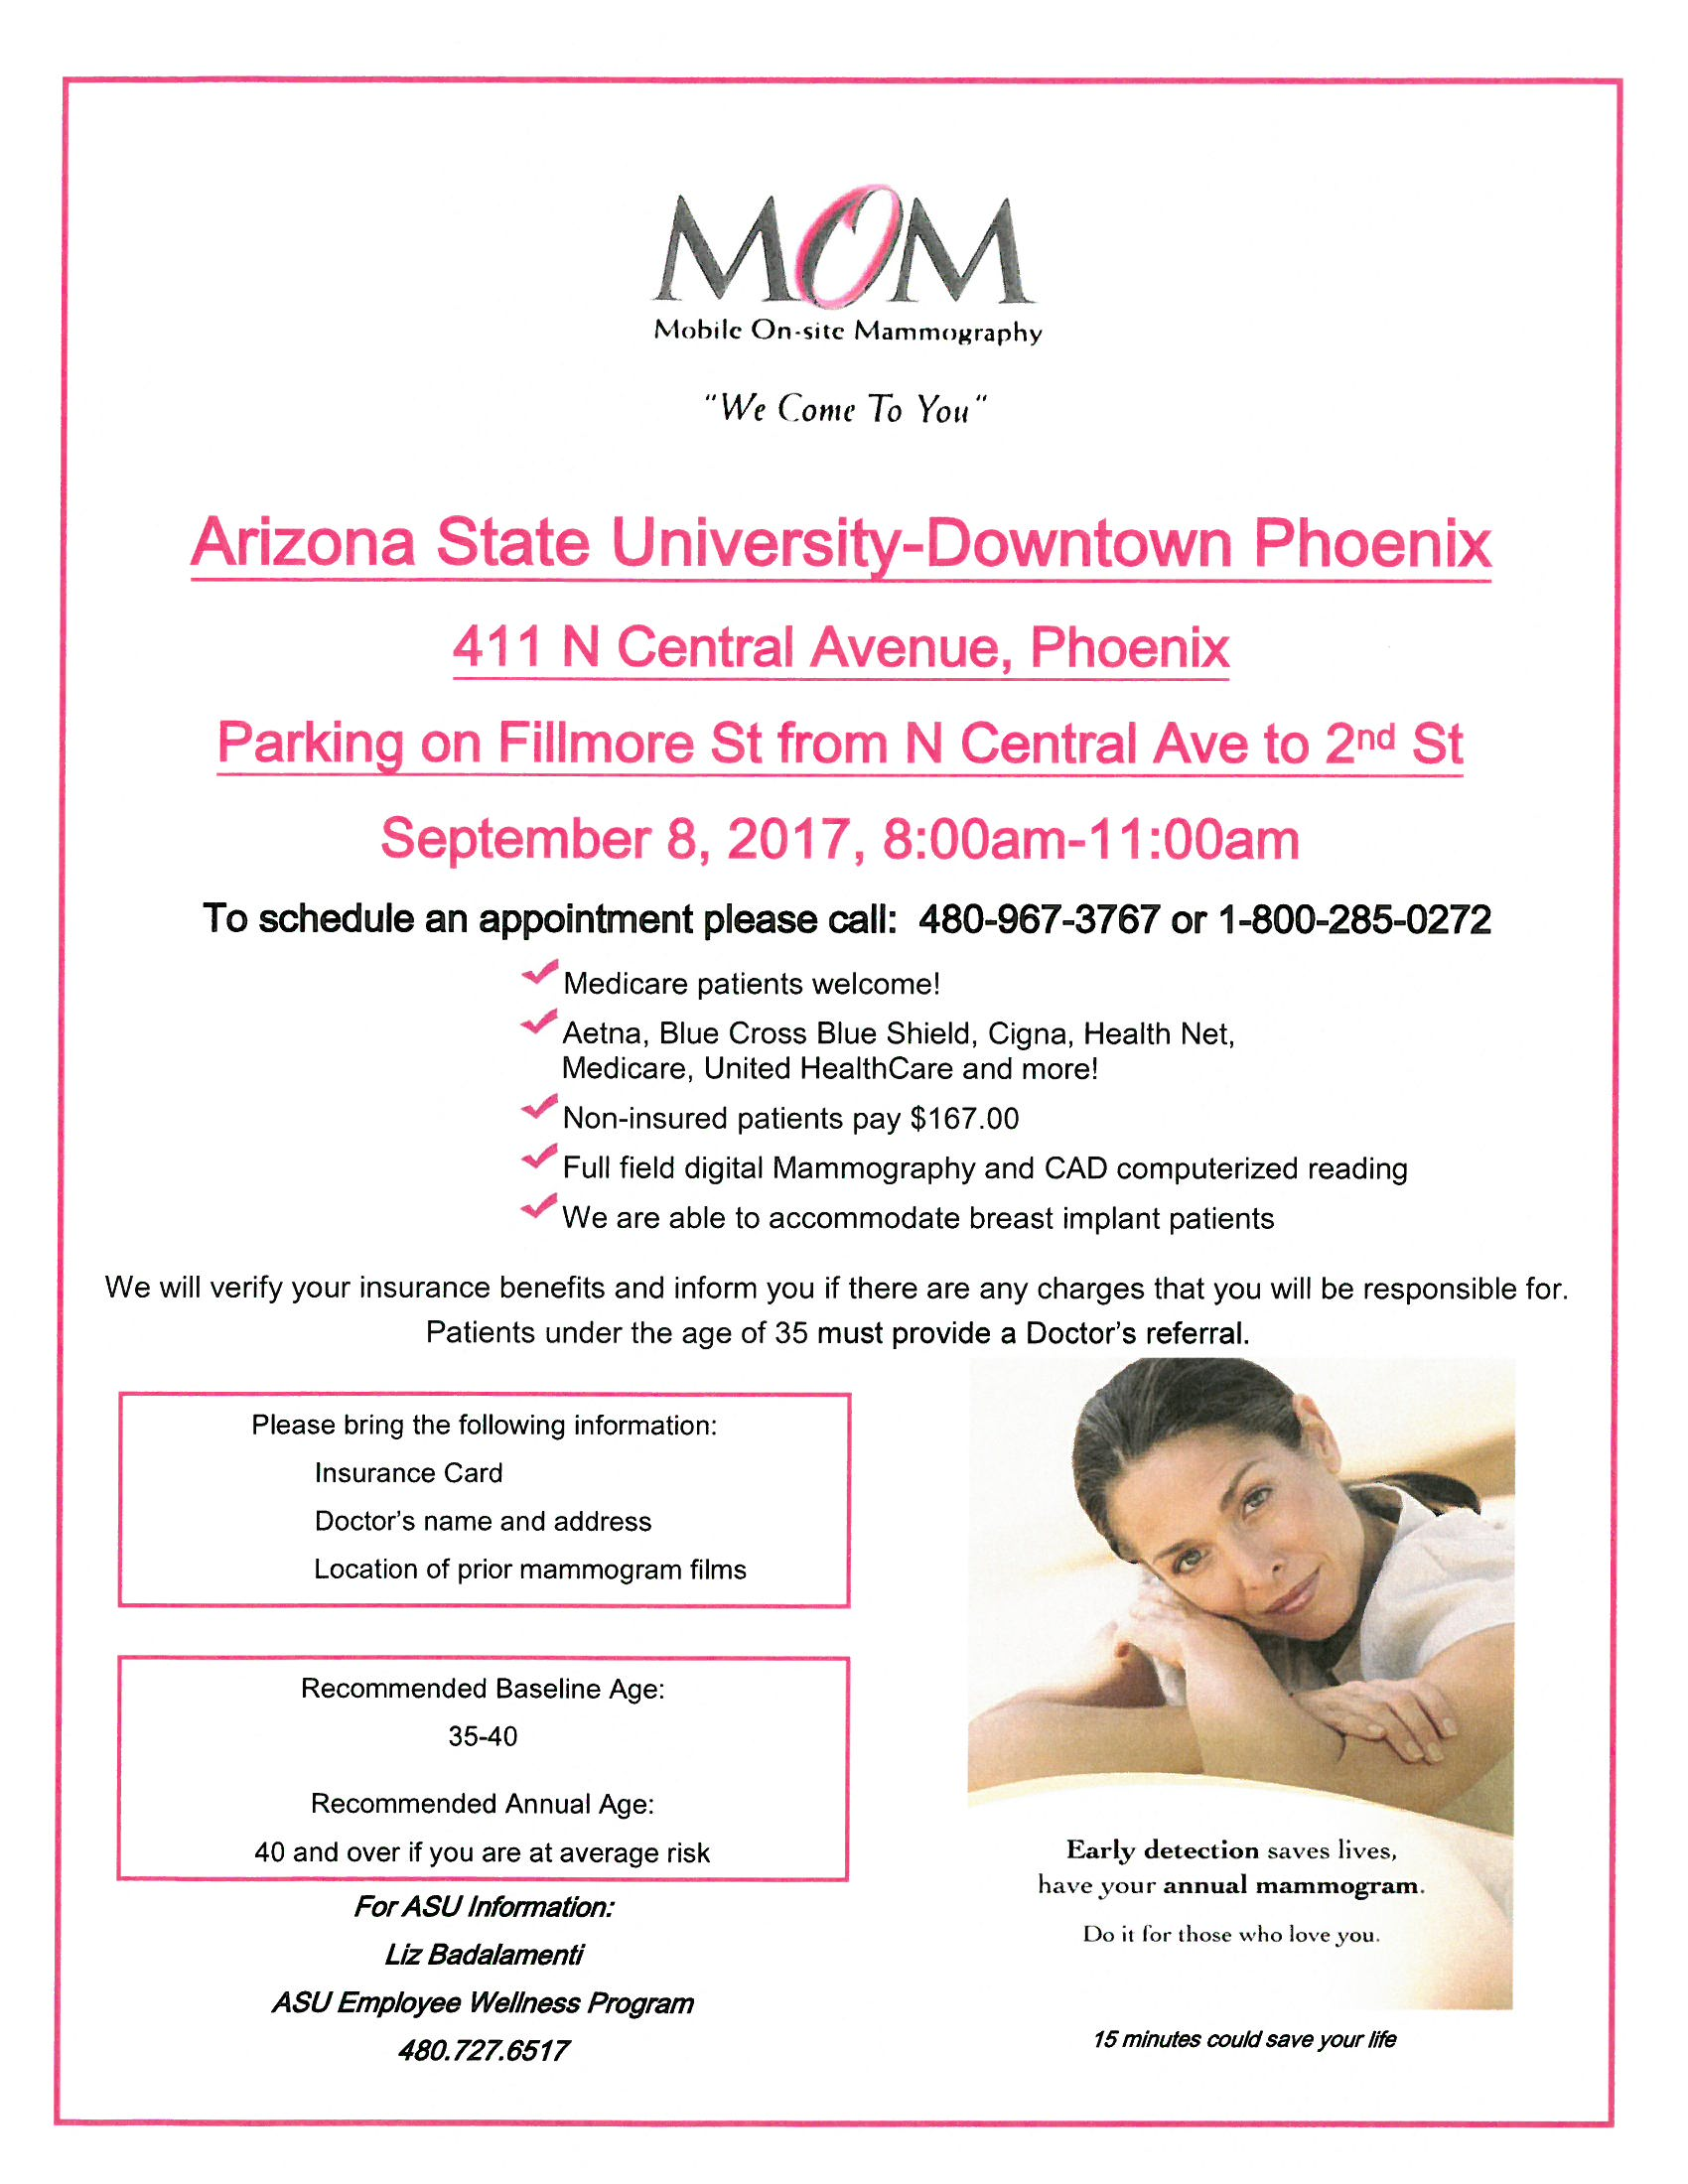 Mom mobile on site mammography asu events download flyer xflitez Gallery